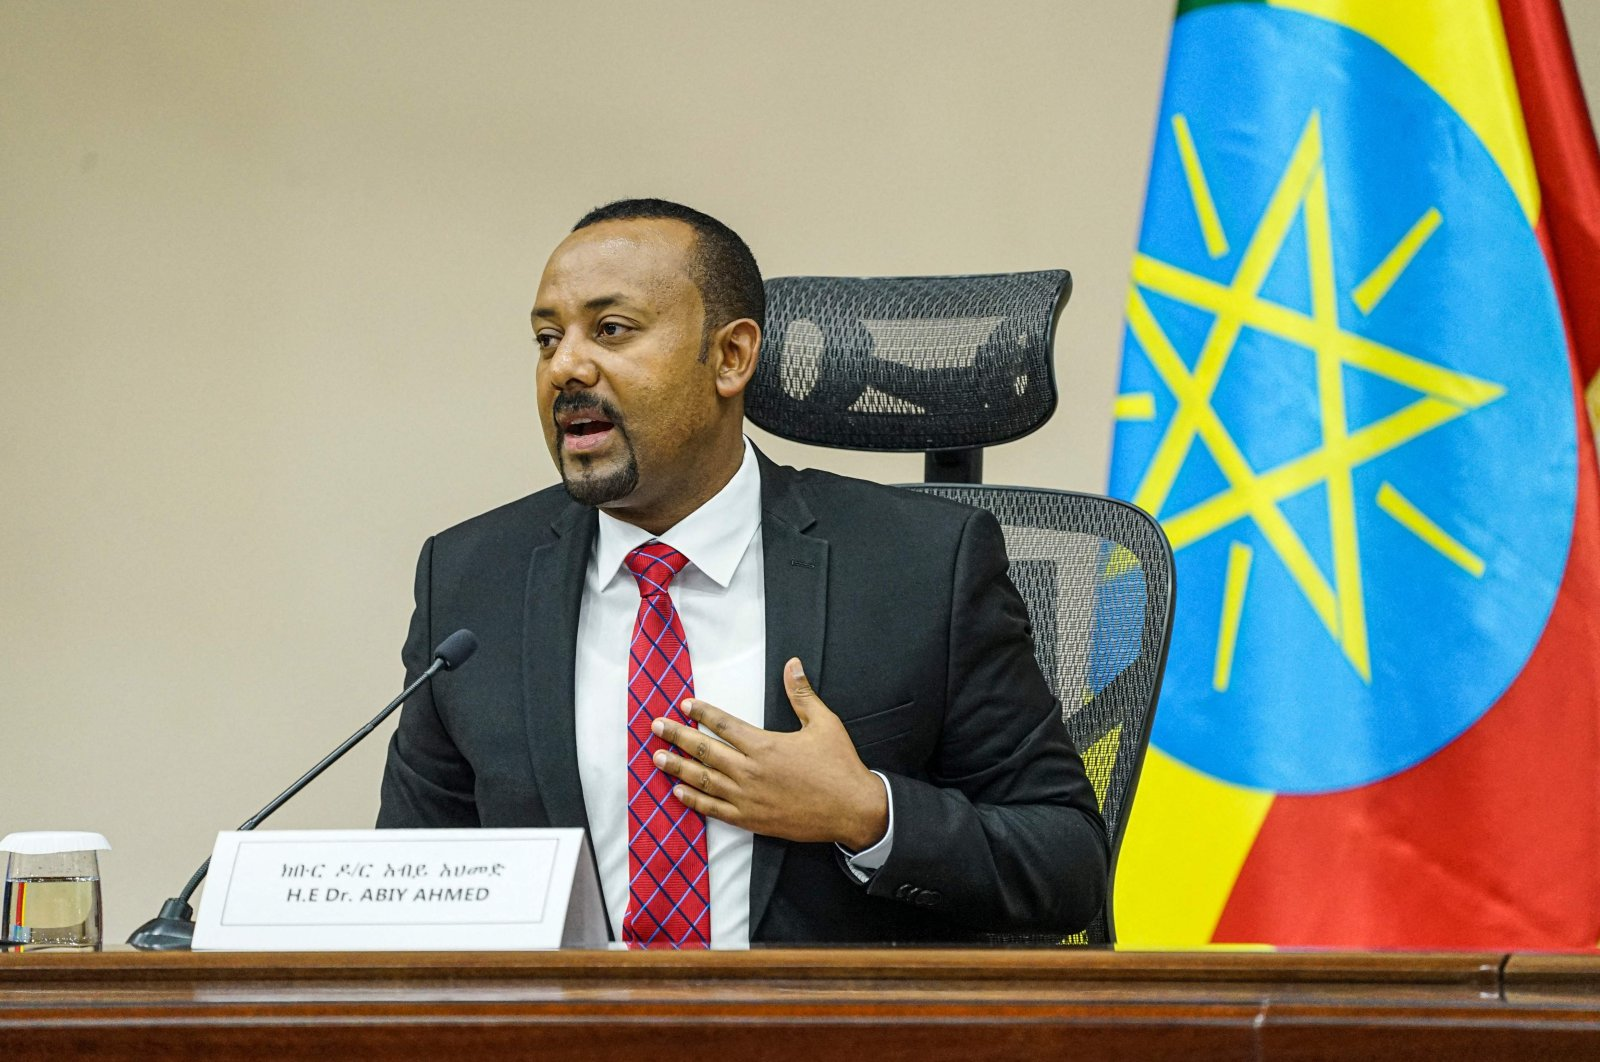 Ethiopian Prime Minister Abiy Ahmed speaks at the House of Peoples Representatives in Addis Ababa, Ethiopia, Nov. 30, 2020. (AFP Photo)